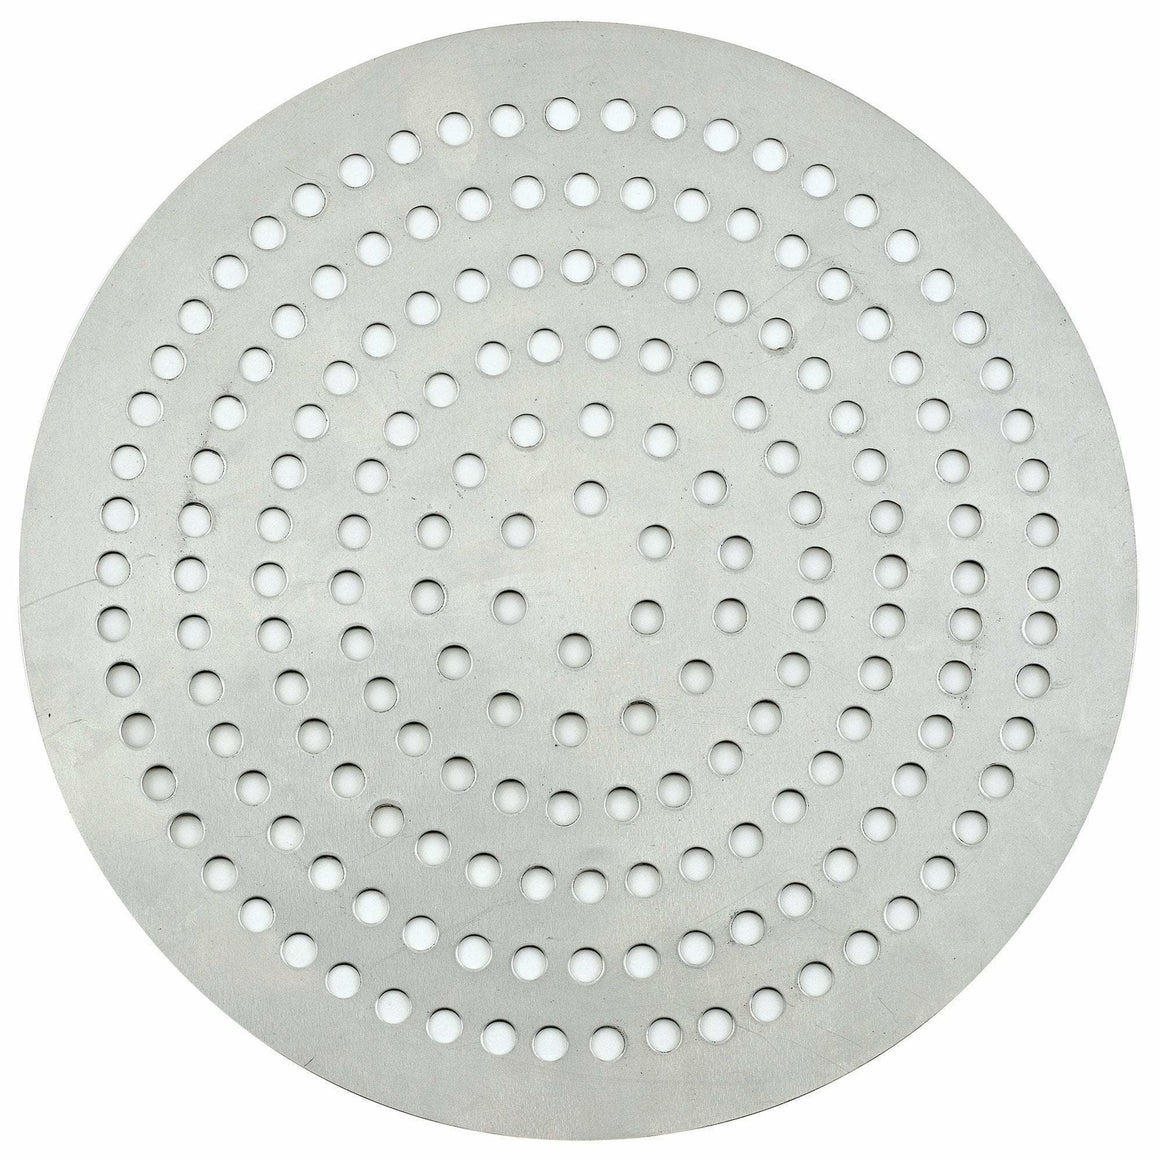 "Winco - APZP-9SP - Aluminum Super-Perforated Pizza Disk, 9"" Diameter, 114 Holes - Pizza Supplies"